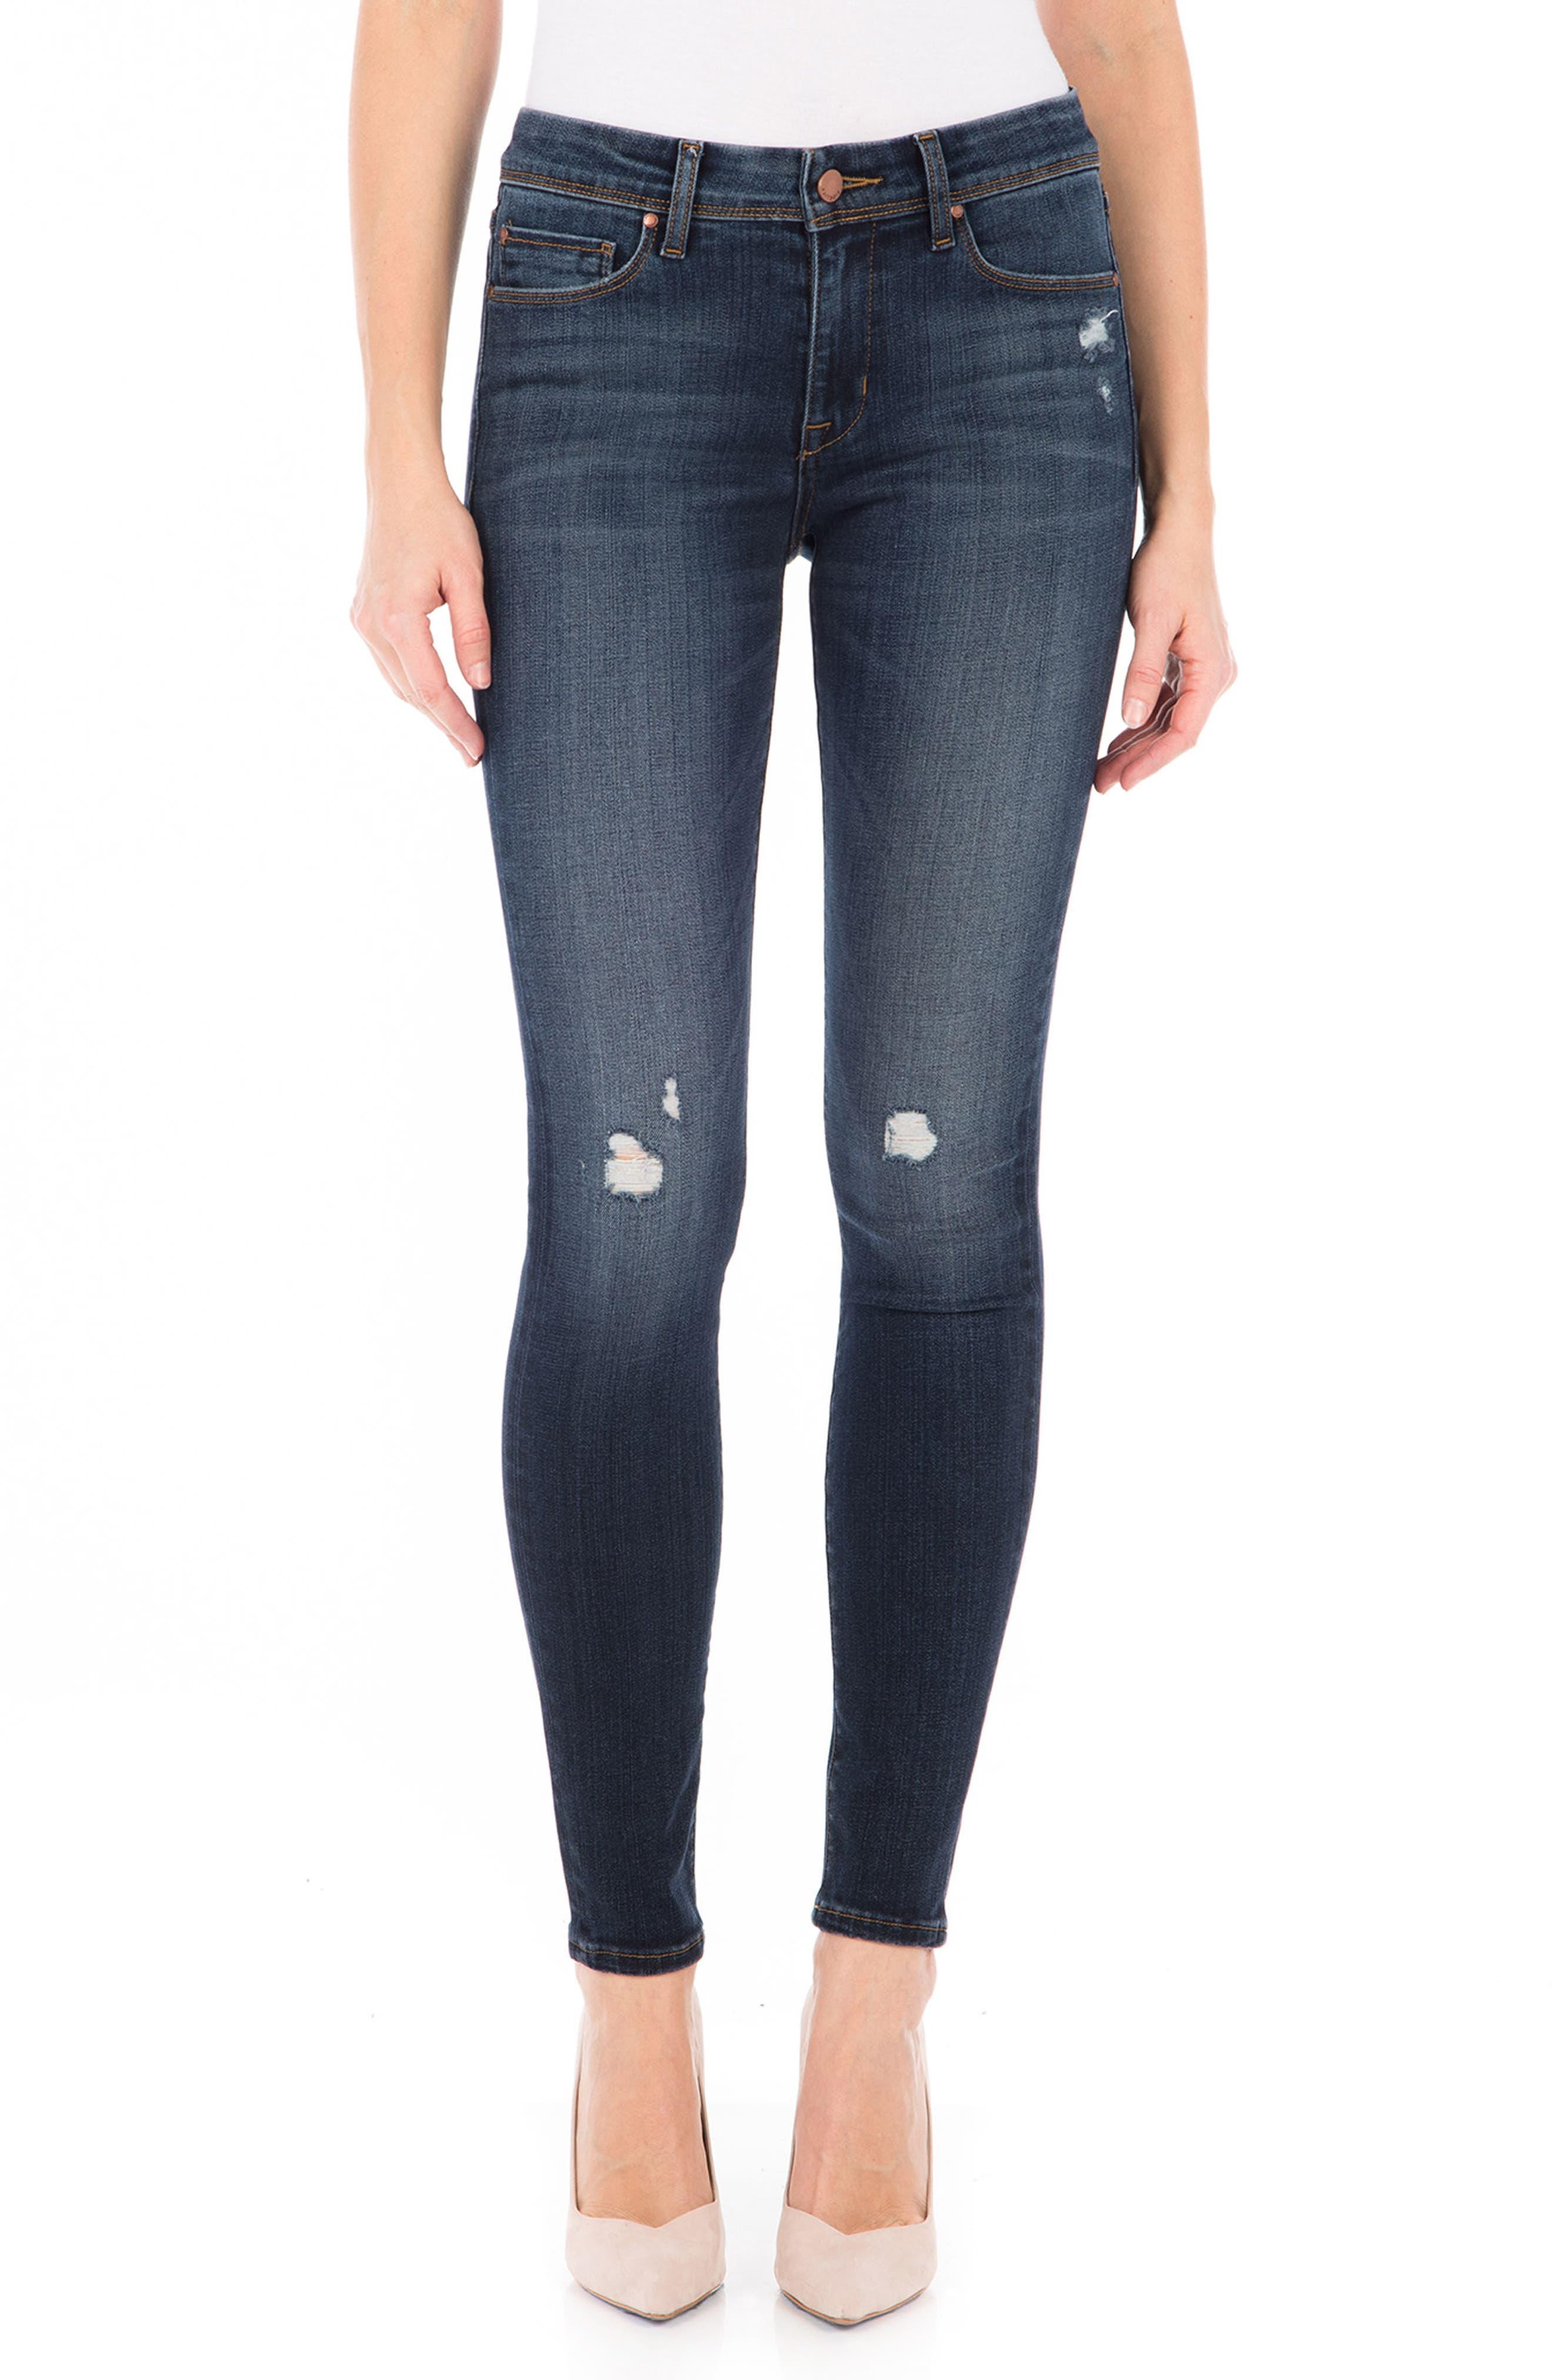 Belvedere Skinny Jeans,                             Main thumbnail 1, color,                             Refinery Blue